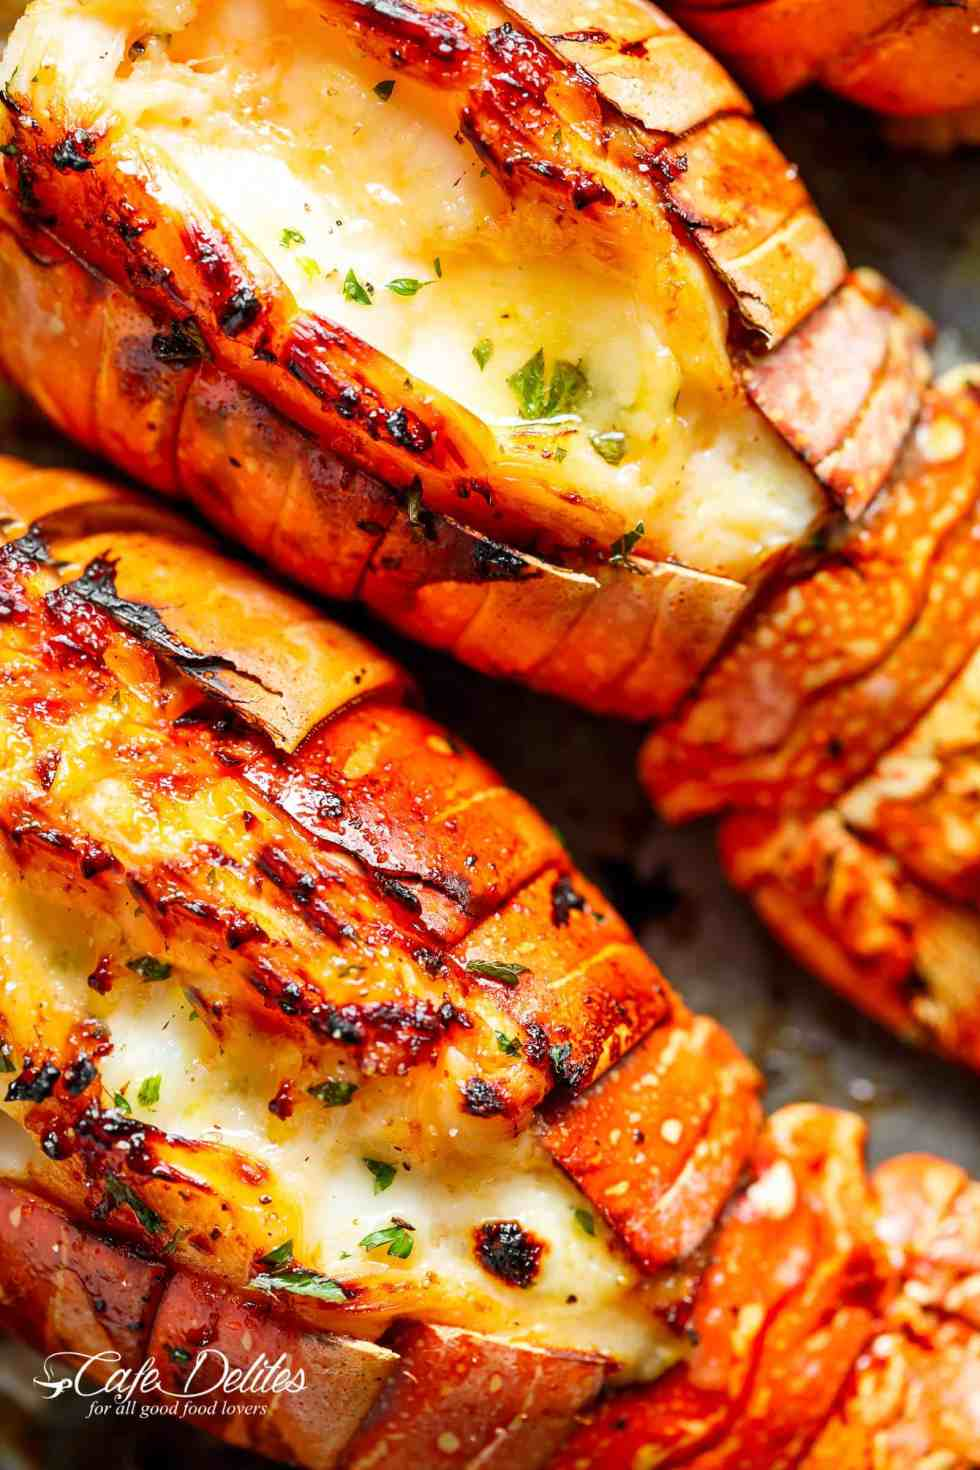 Broiled Lobster Tails with Honey Garlic Butter White Wine Sauce | cafedelites.com